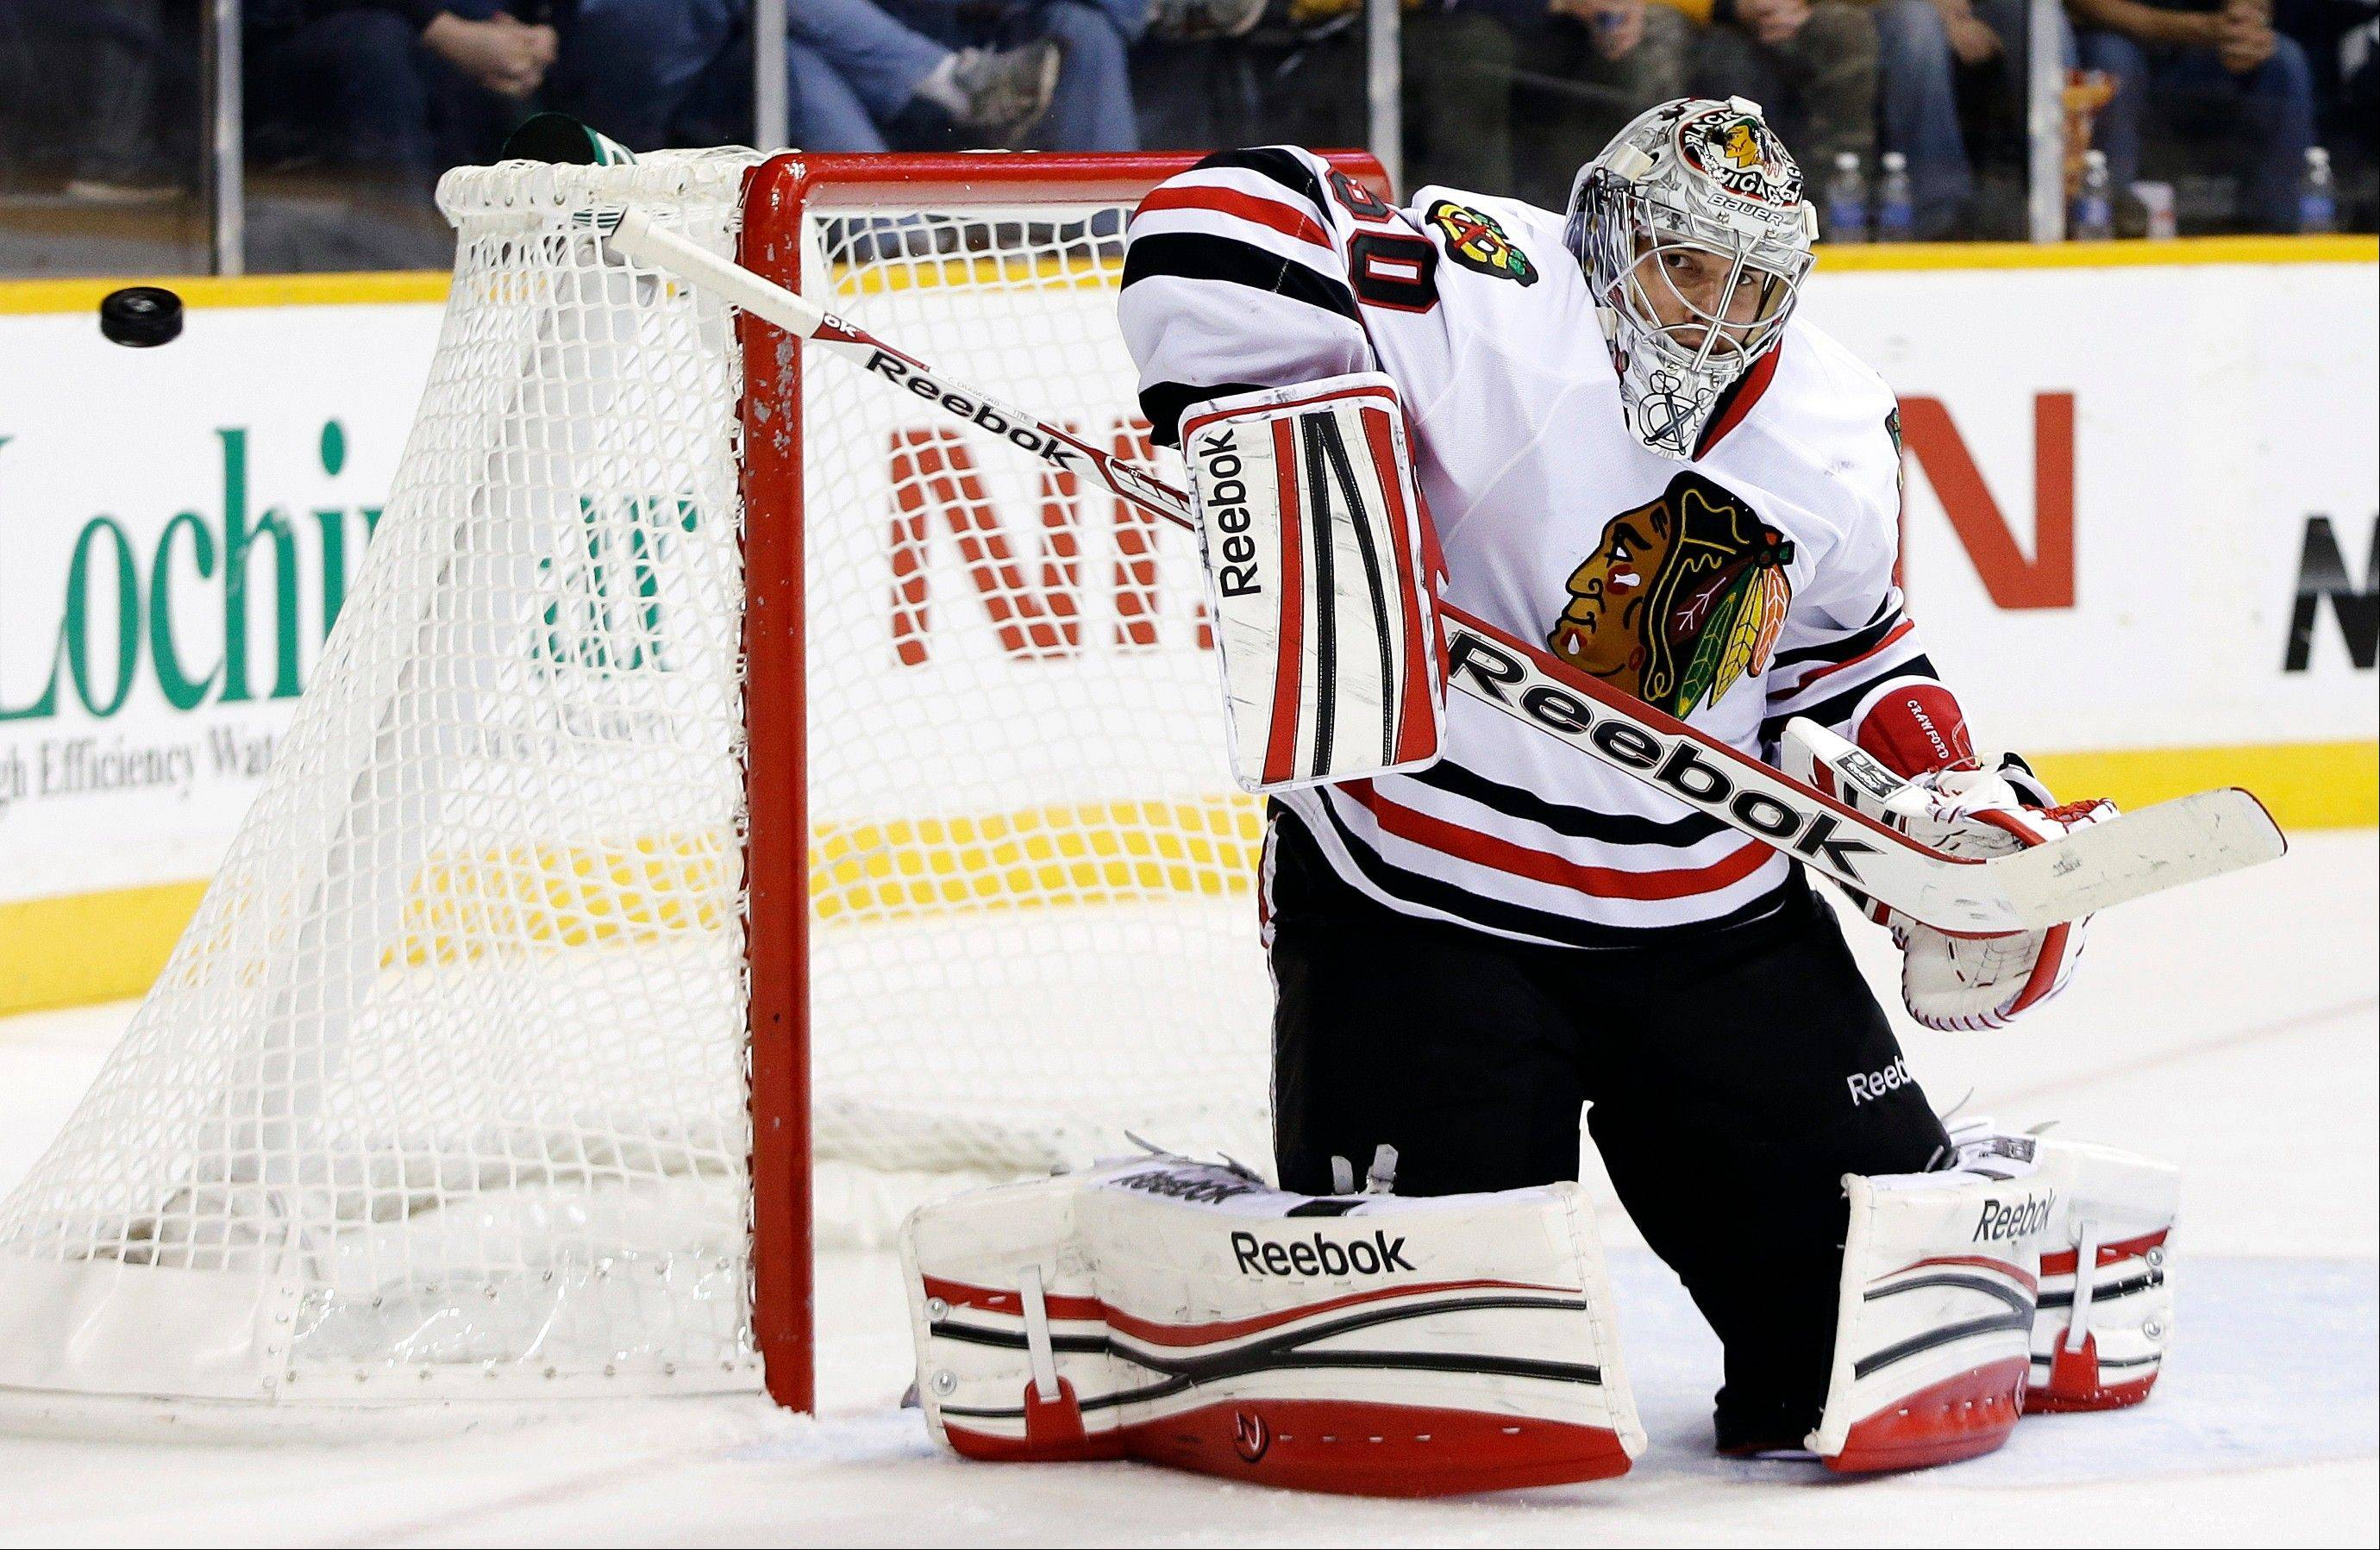 Chicago Blackhawks goalie Corey Crawford blocks a shot against the Nashville Predators in the second period of an NHL hockey game, Sunday, Feb. 10, 2013, in Nashville, Tenn.